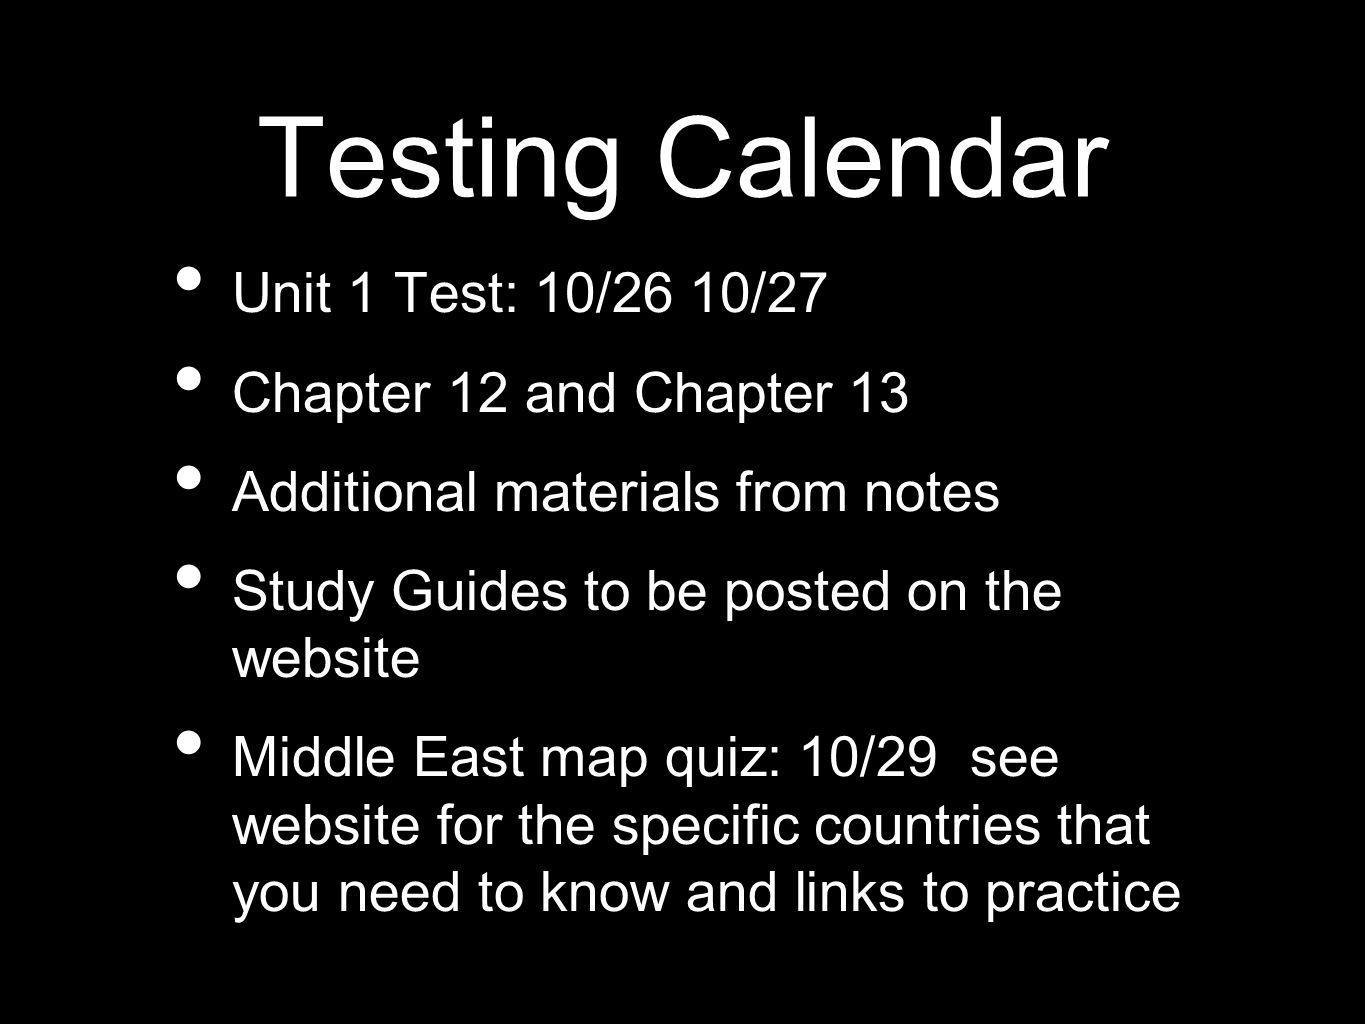 Testing Calendar Unit 1 Test: 10/26 10/27 Chapter 12 and Chapter 13